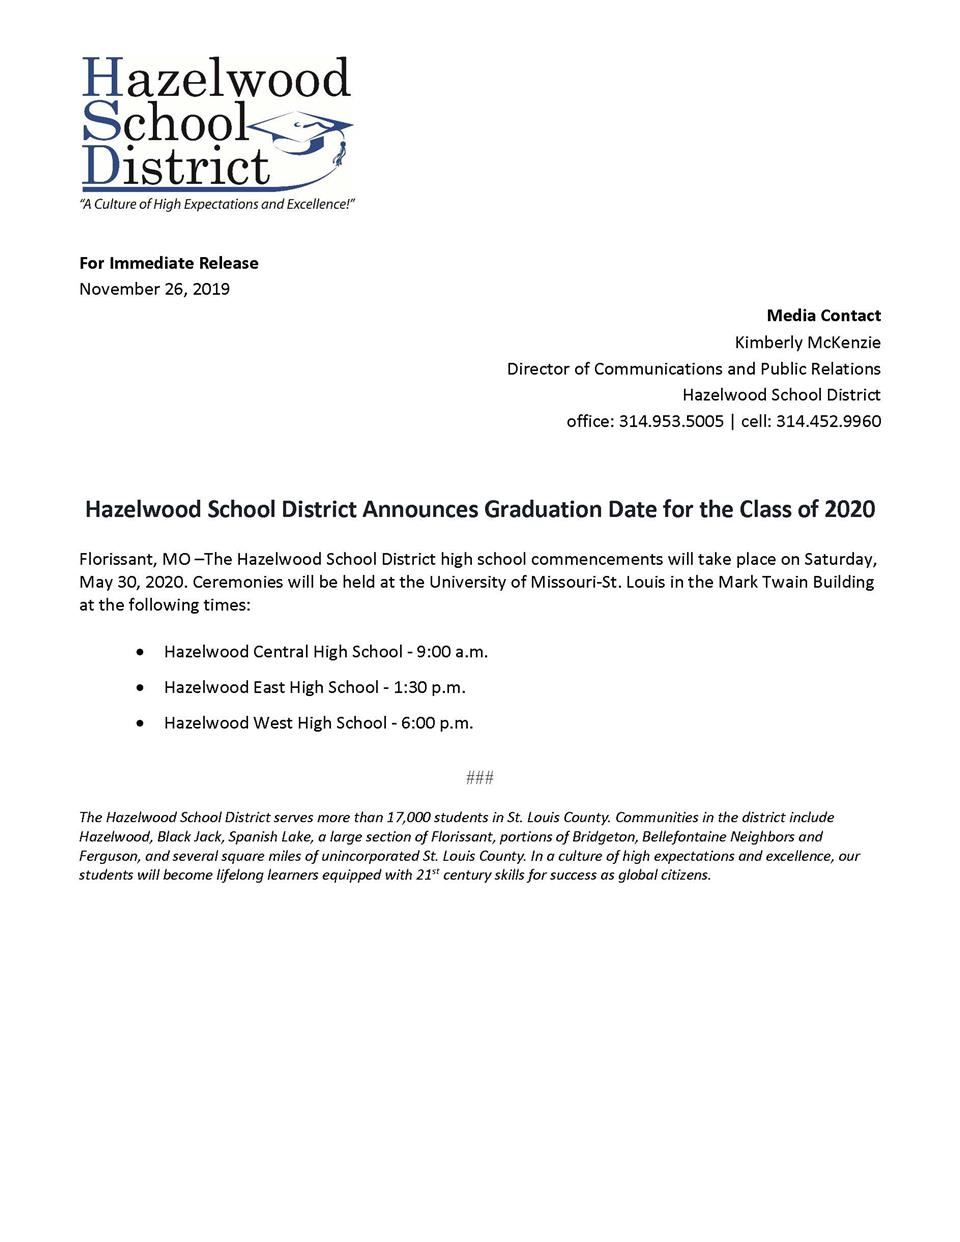 Graduation Dates for 2020